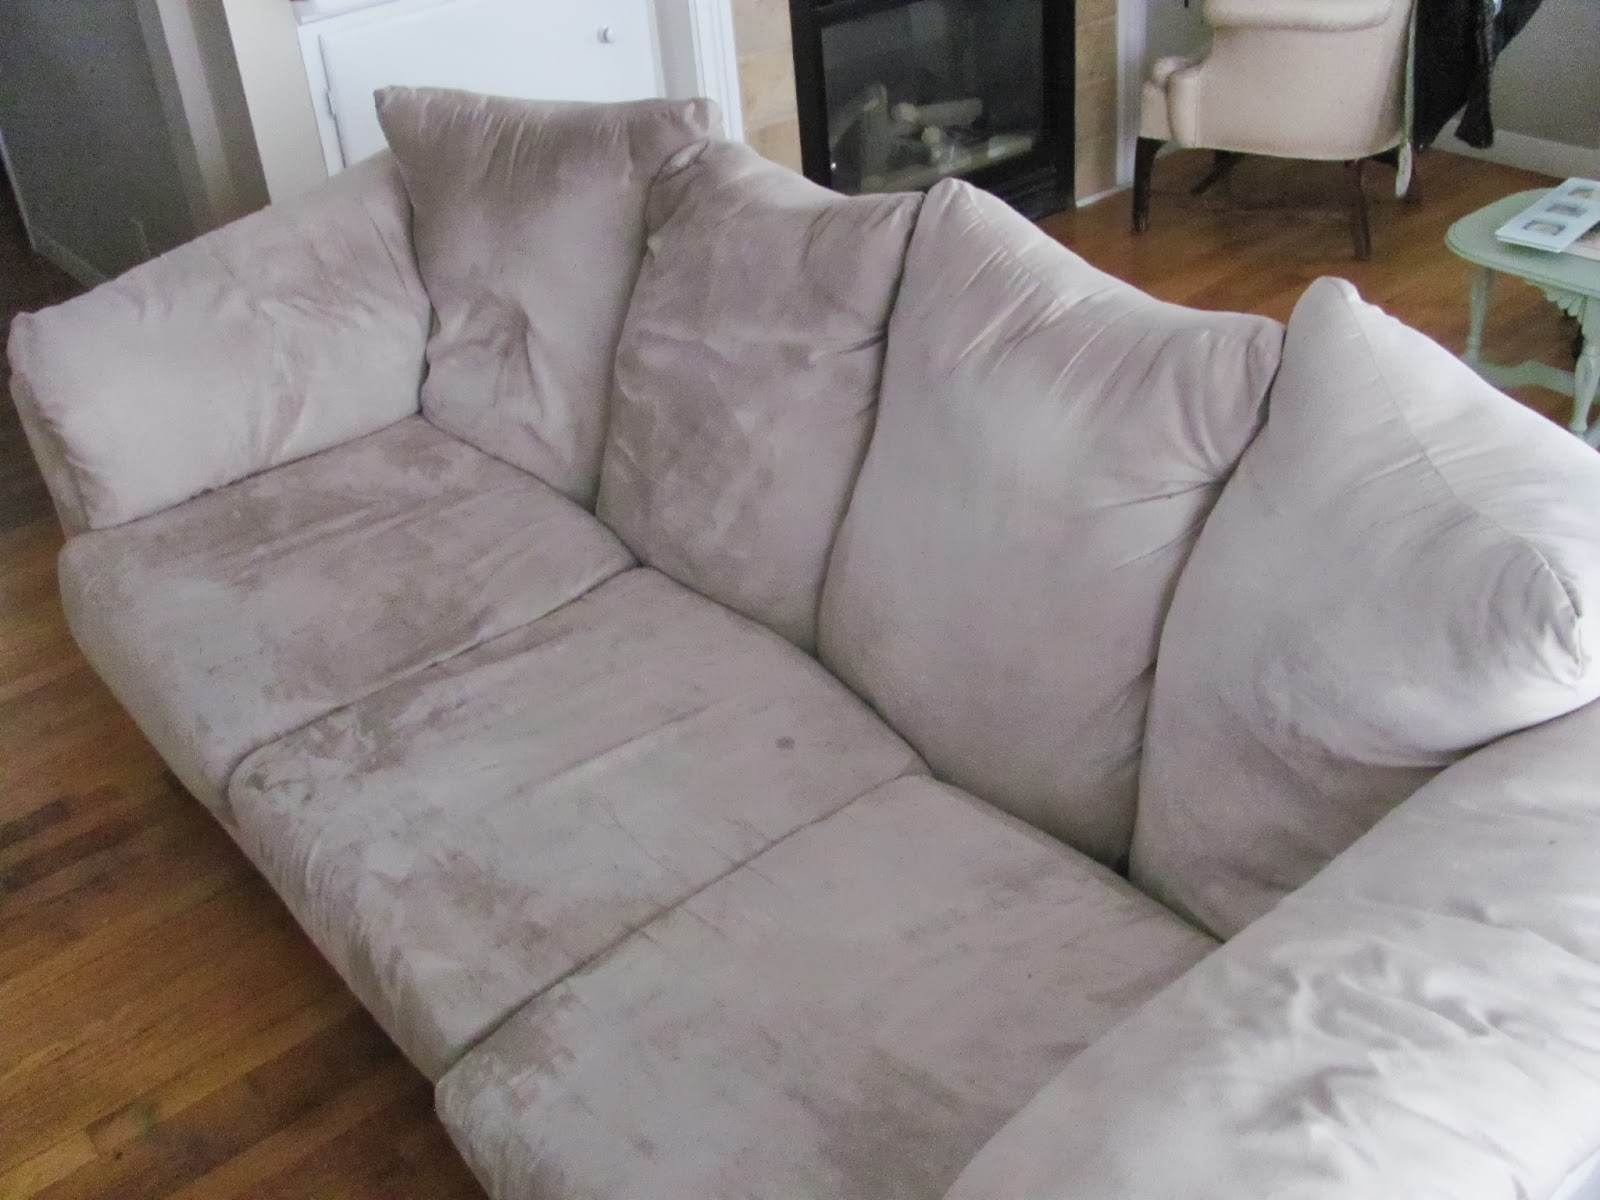 The couch is seen at an angle before being sold on Craigslist